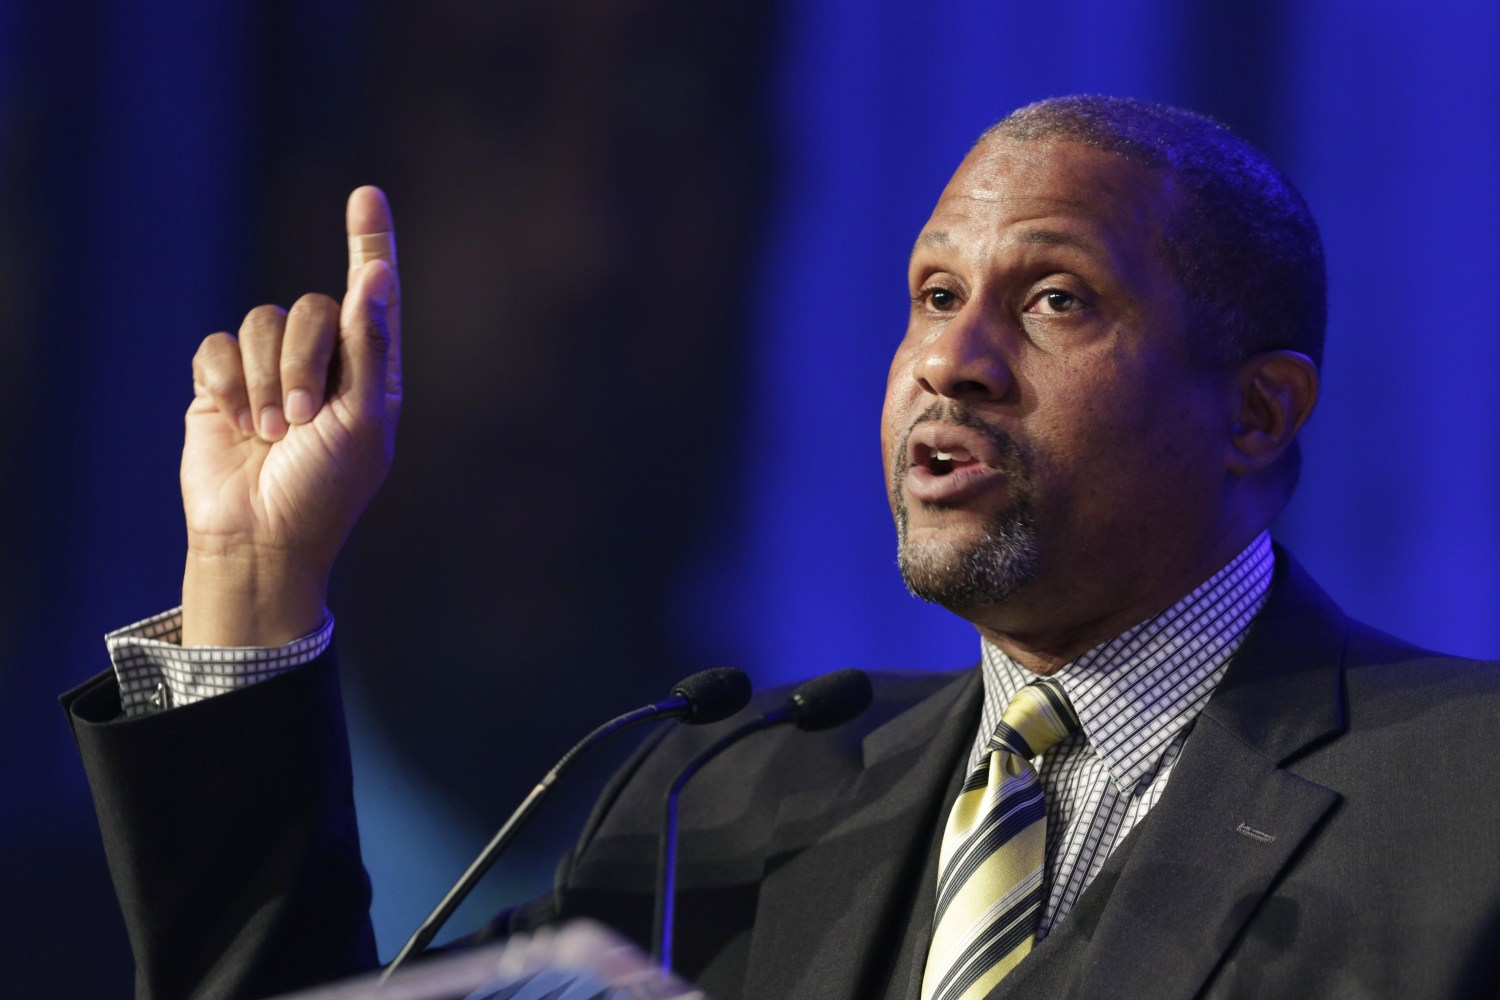 PBS host, IN native Tavis Smiley suspended after sexual misconduct allegations